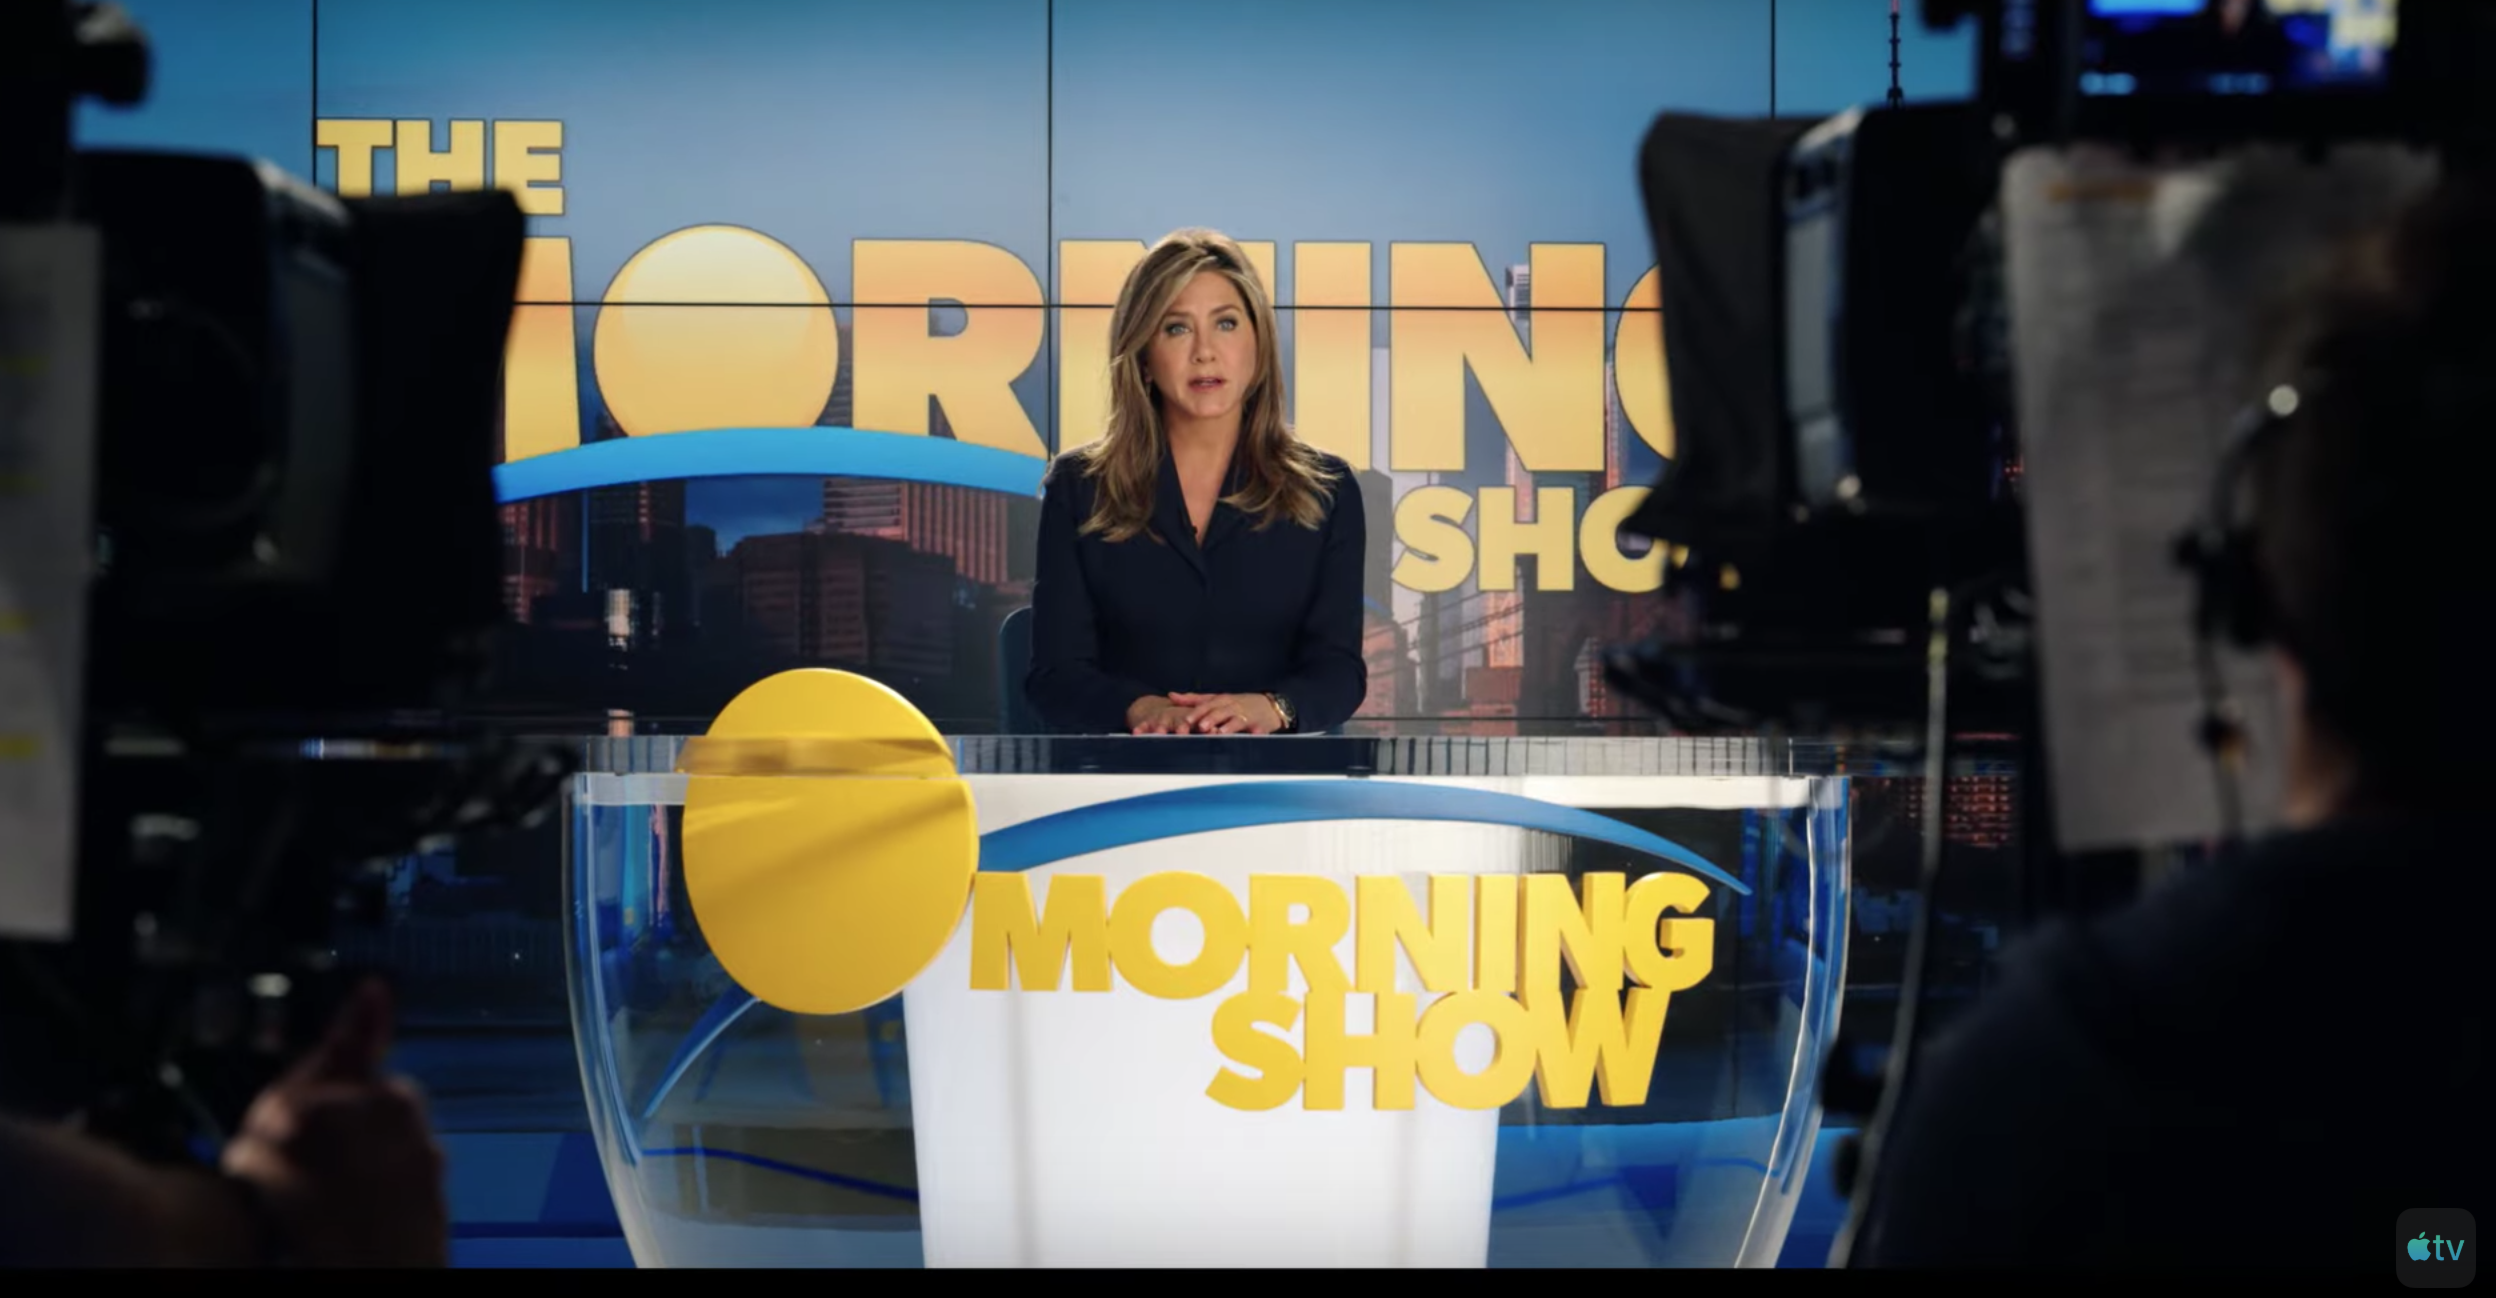 The Morning Show - Apple TV